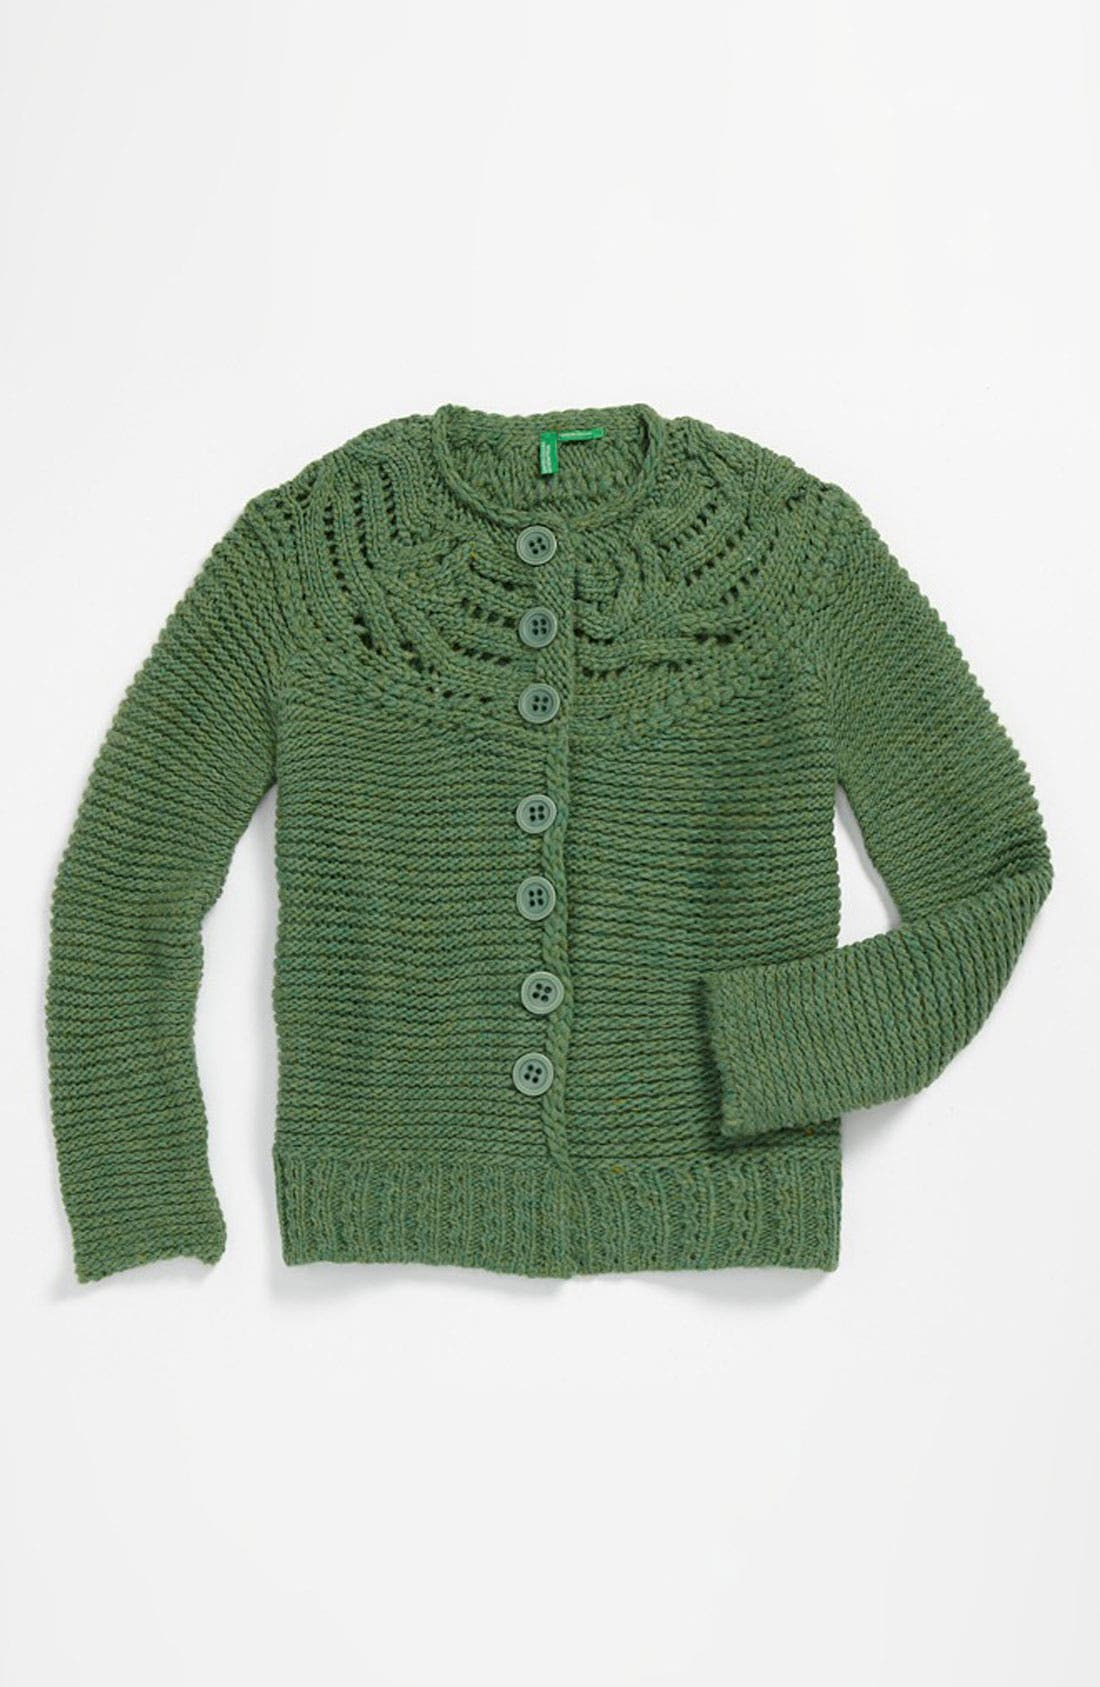 Alternate Image 1 Selected - United Colors of Benetton Kids Knit Sweater (Little Girls & Big Girls)